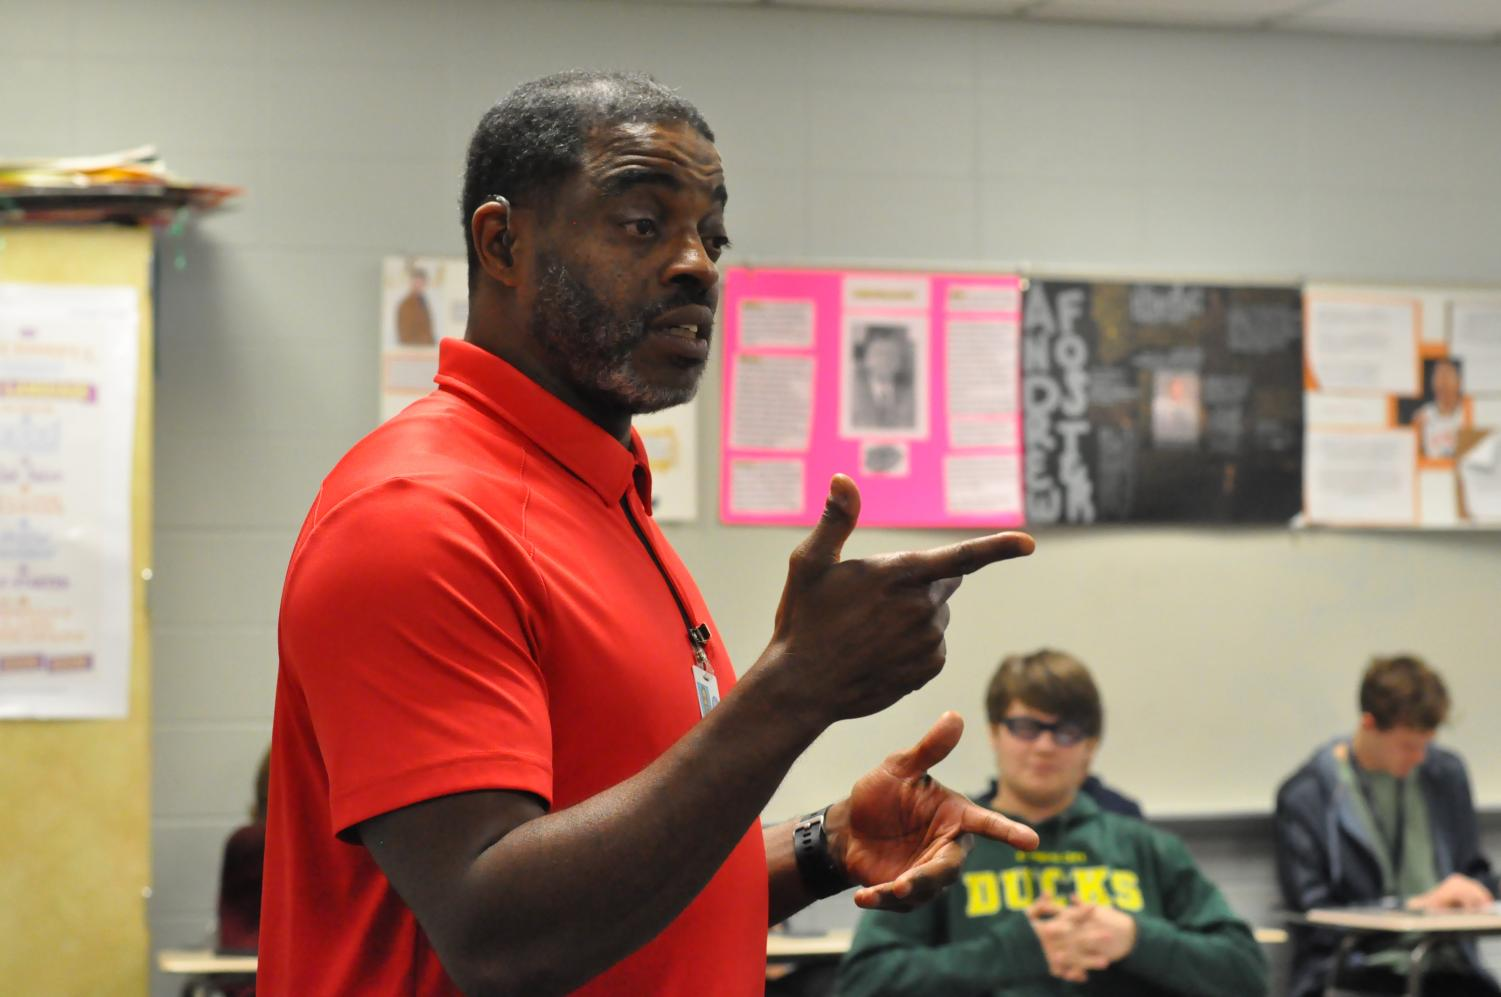 American Sign Language teacher Darnell Woods communicates with students in his fifth period class on March 22. Woods' mom first noticed he was hard of hearing when he was 5 years old. He has worn hearing aids since third grade, but his hearing has progressively worsened over time.